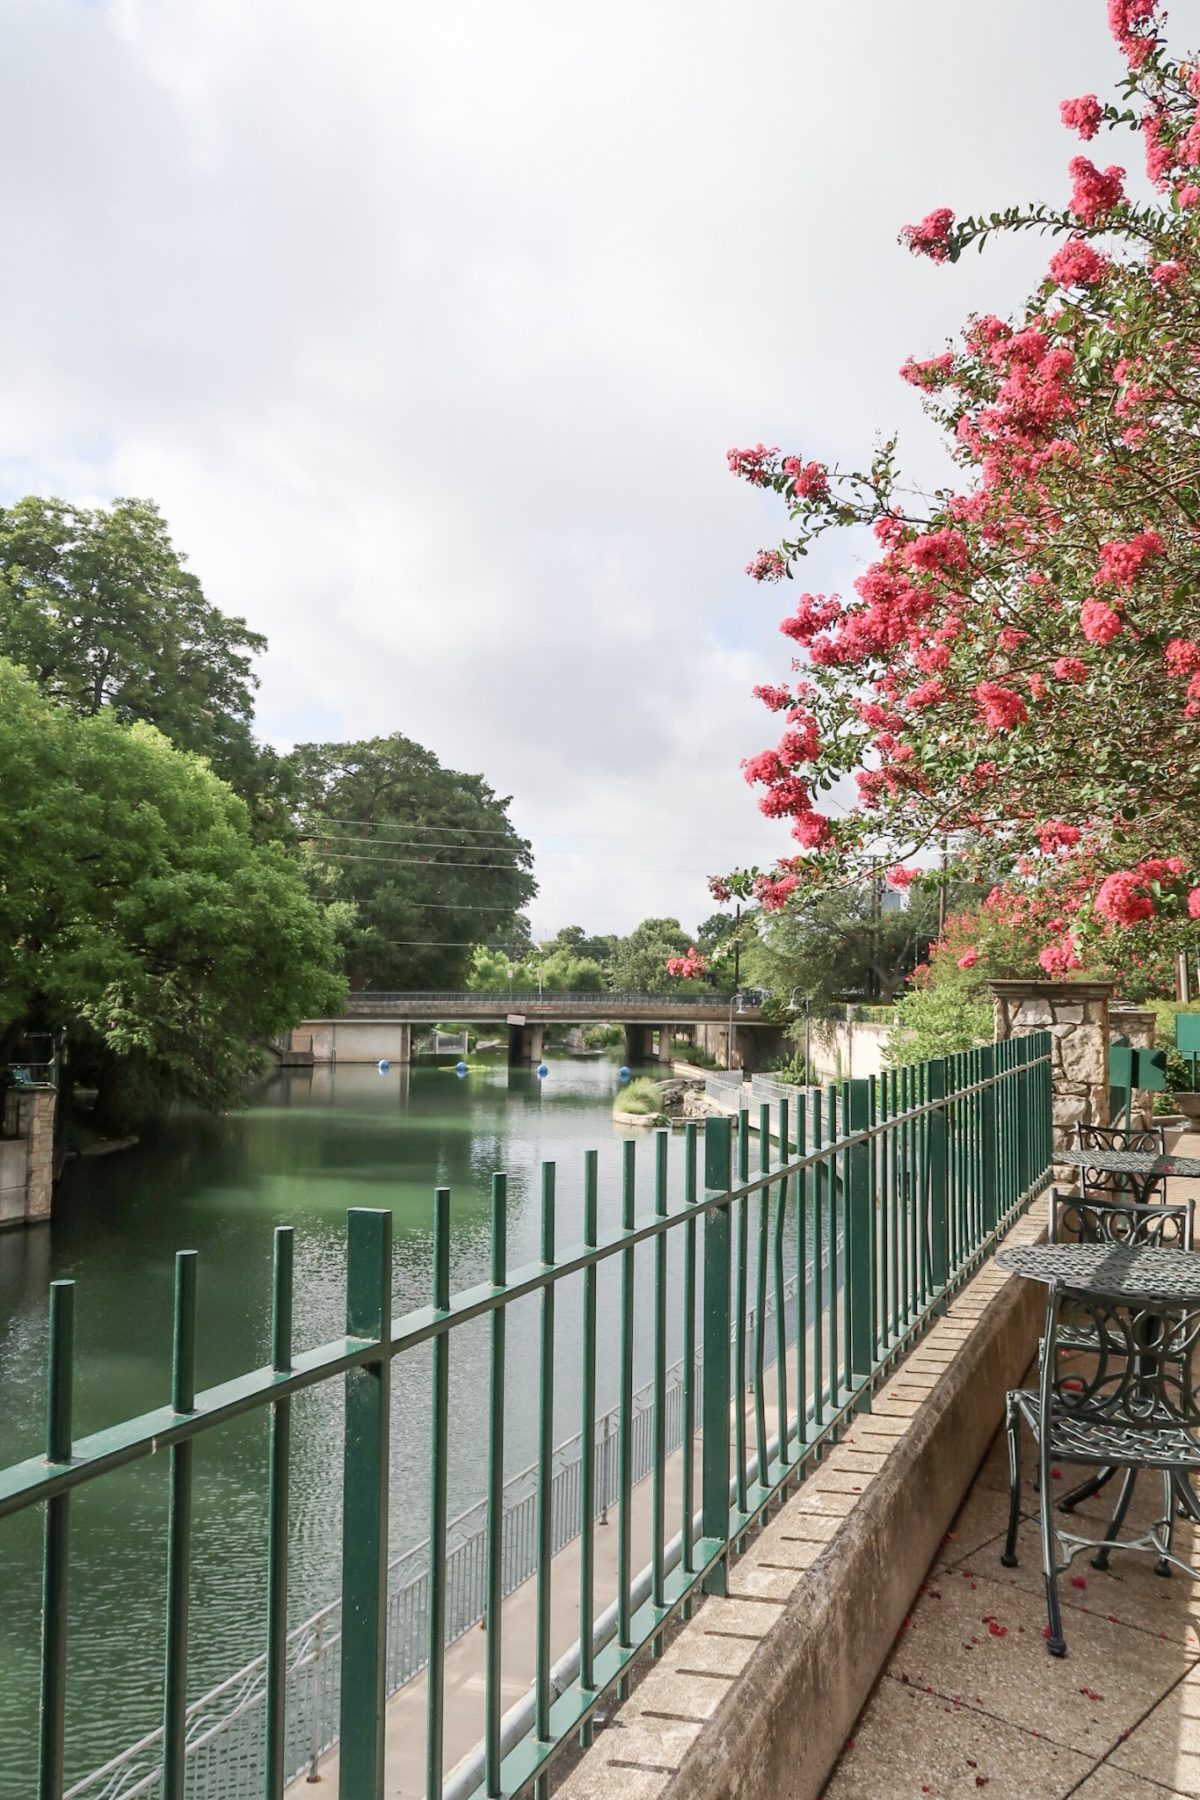 48 hours in San Antonio - riverwalk